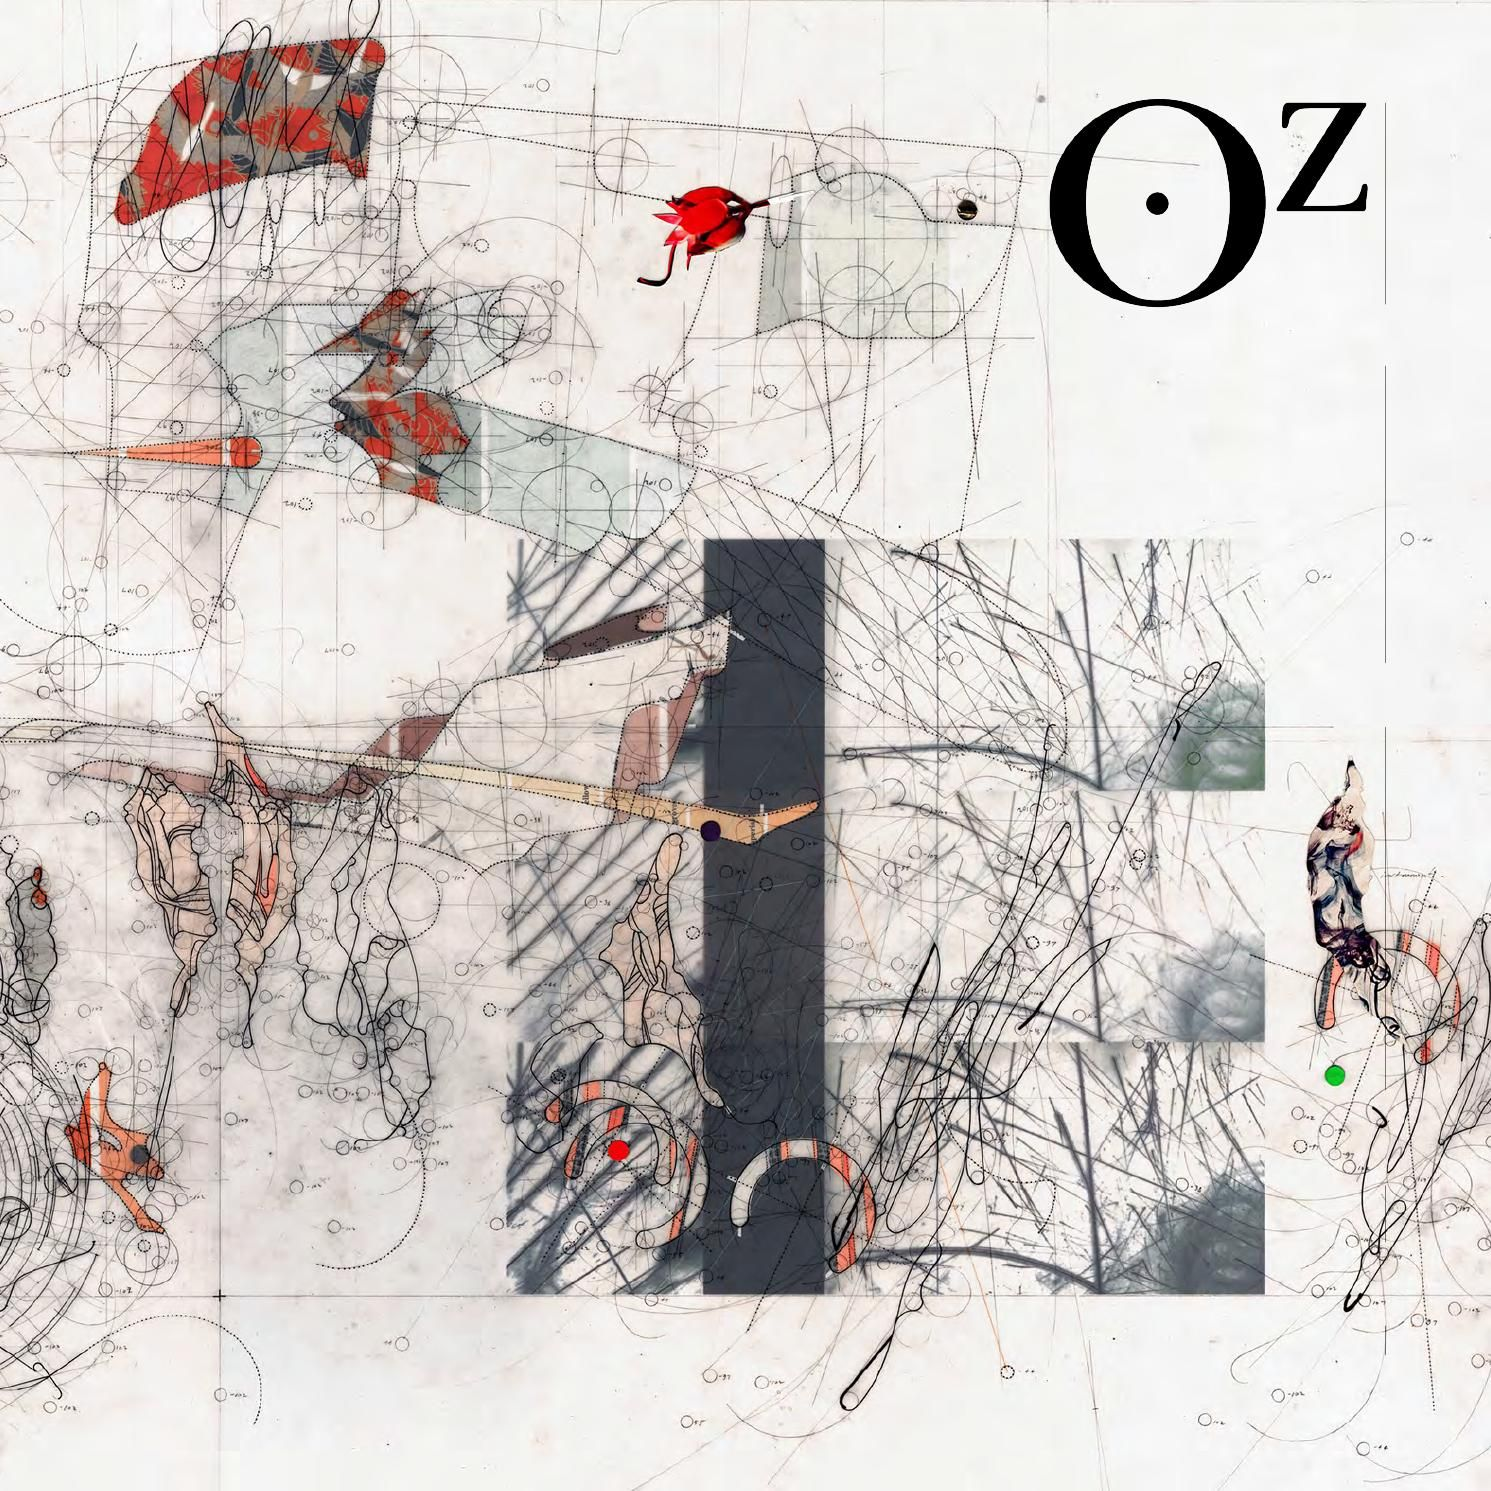 Oz 36 Complexity  Annual Publication of the College of Architecture, Planning + Design at Kansas State University